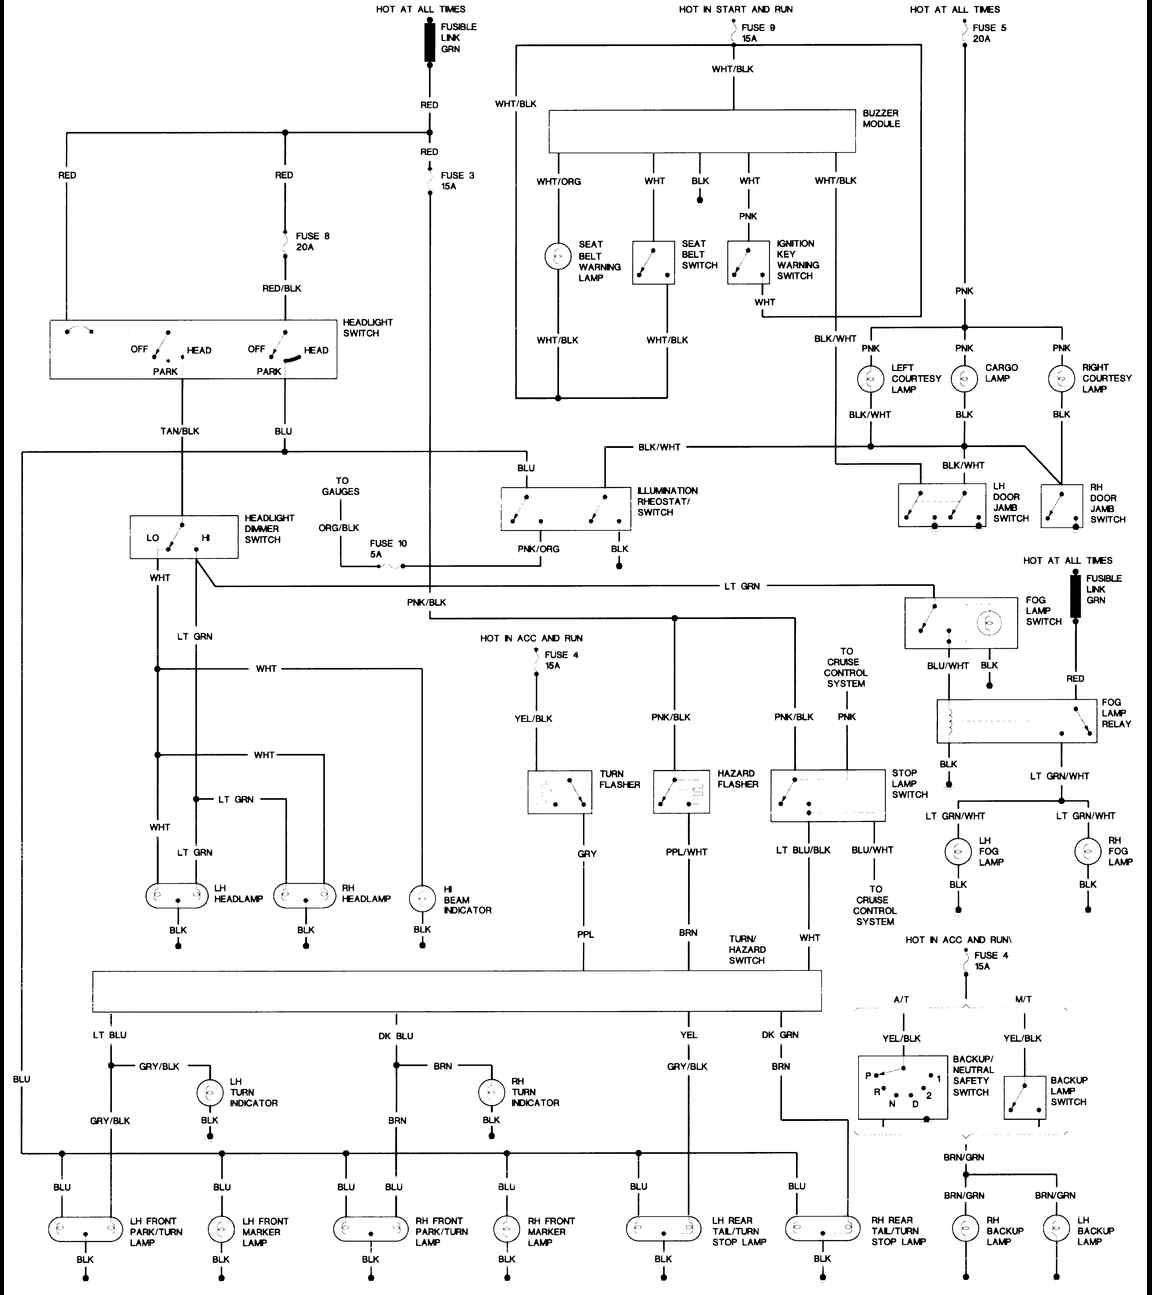 Jeep Yj Wiring Schematic Improve Diagram 1987 Wrangler Body 2 Freeautomechanic Diagrams